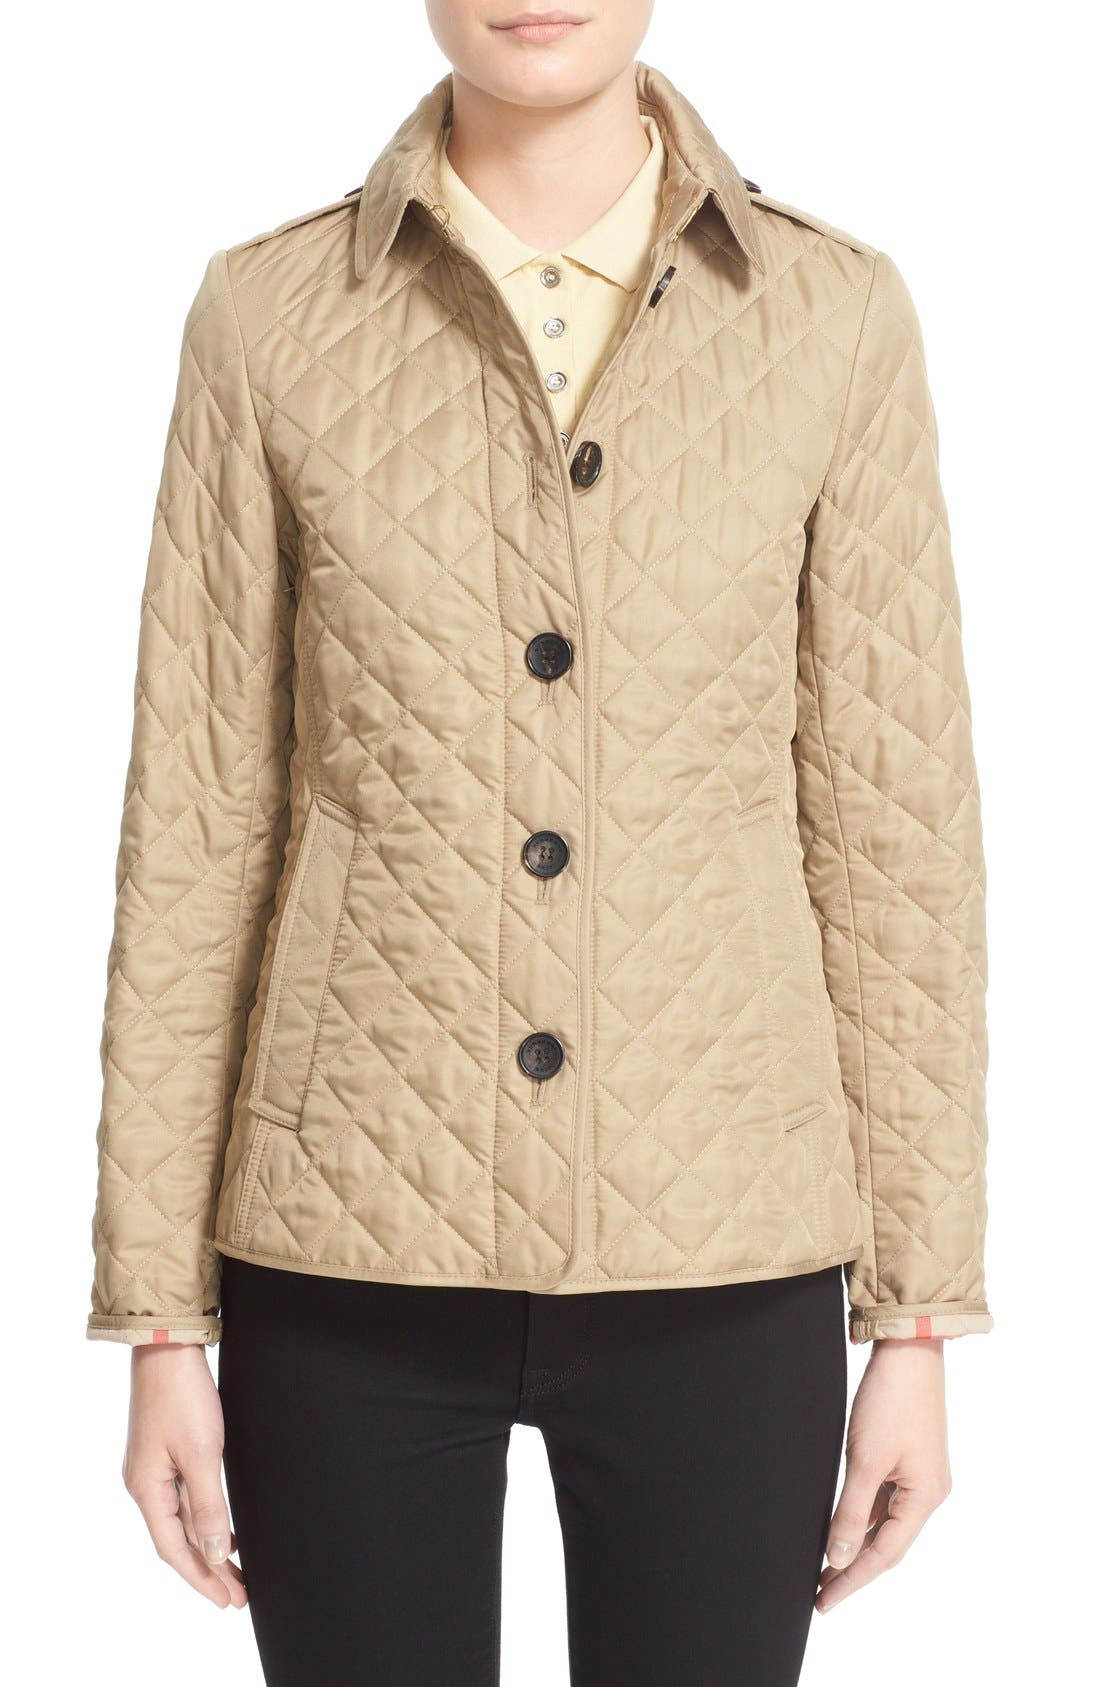 Ashurst Quilted Jacket,                             Main thumbnail 1, color,                             270